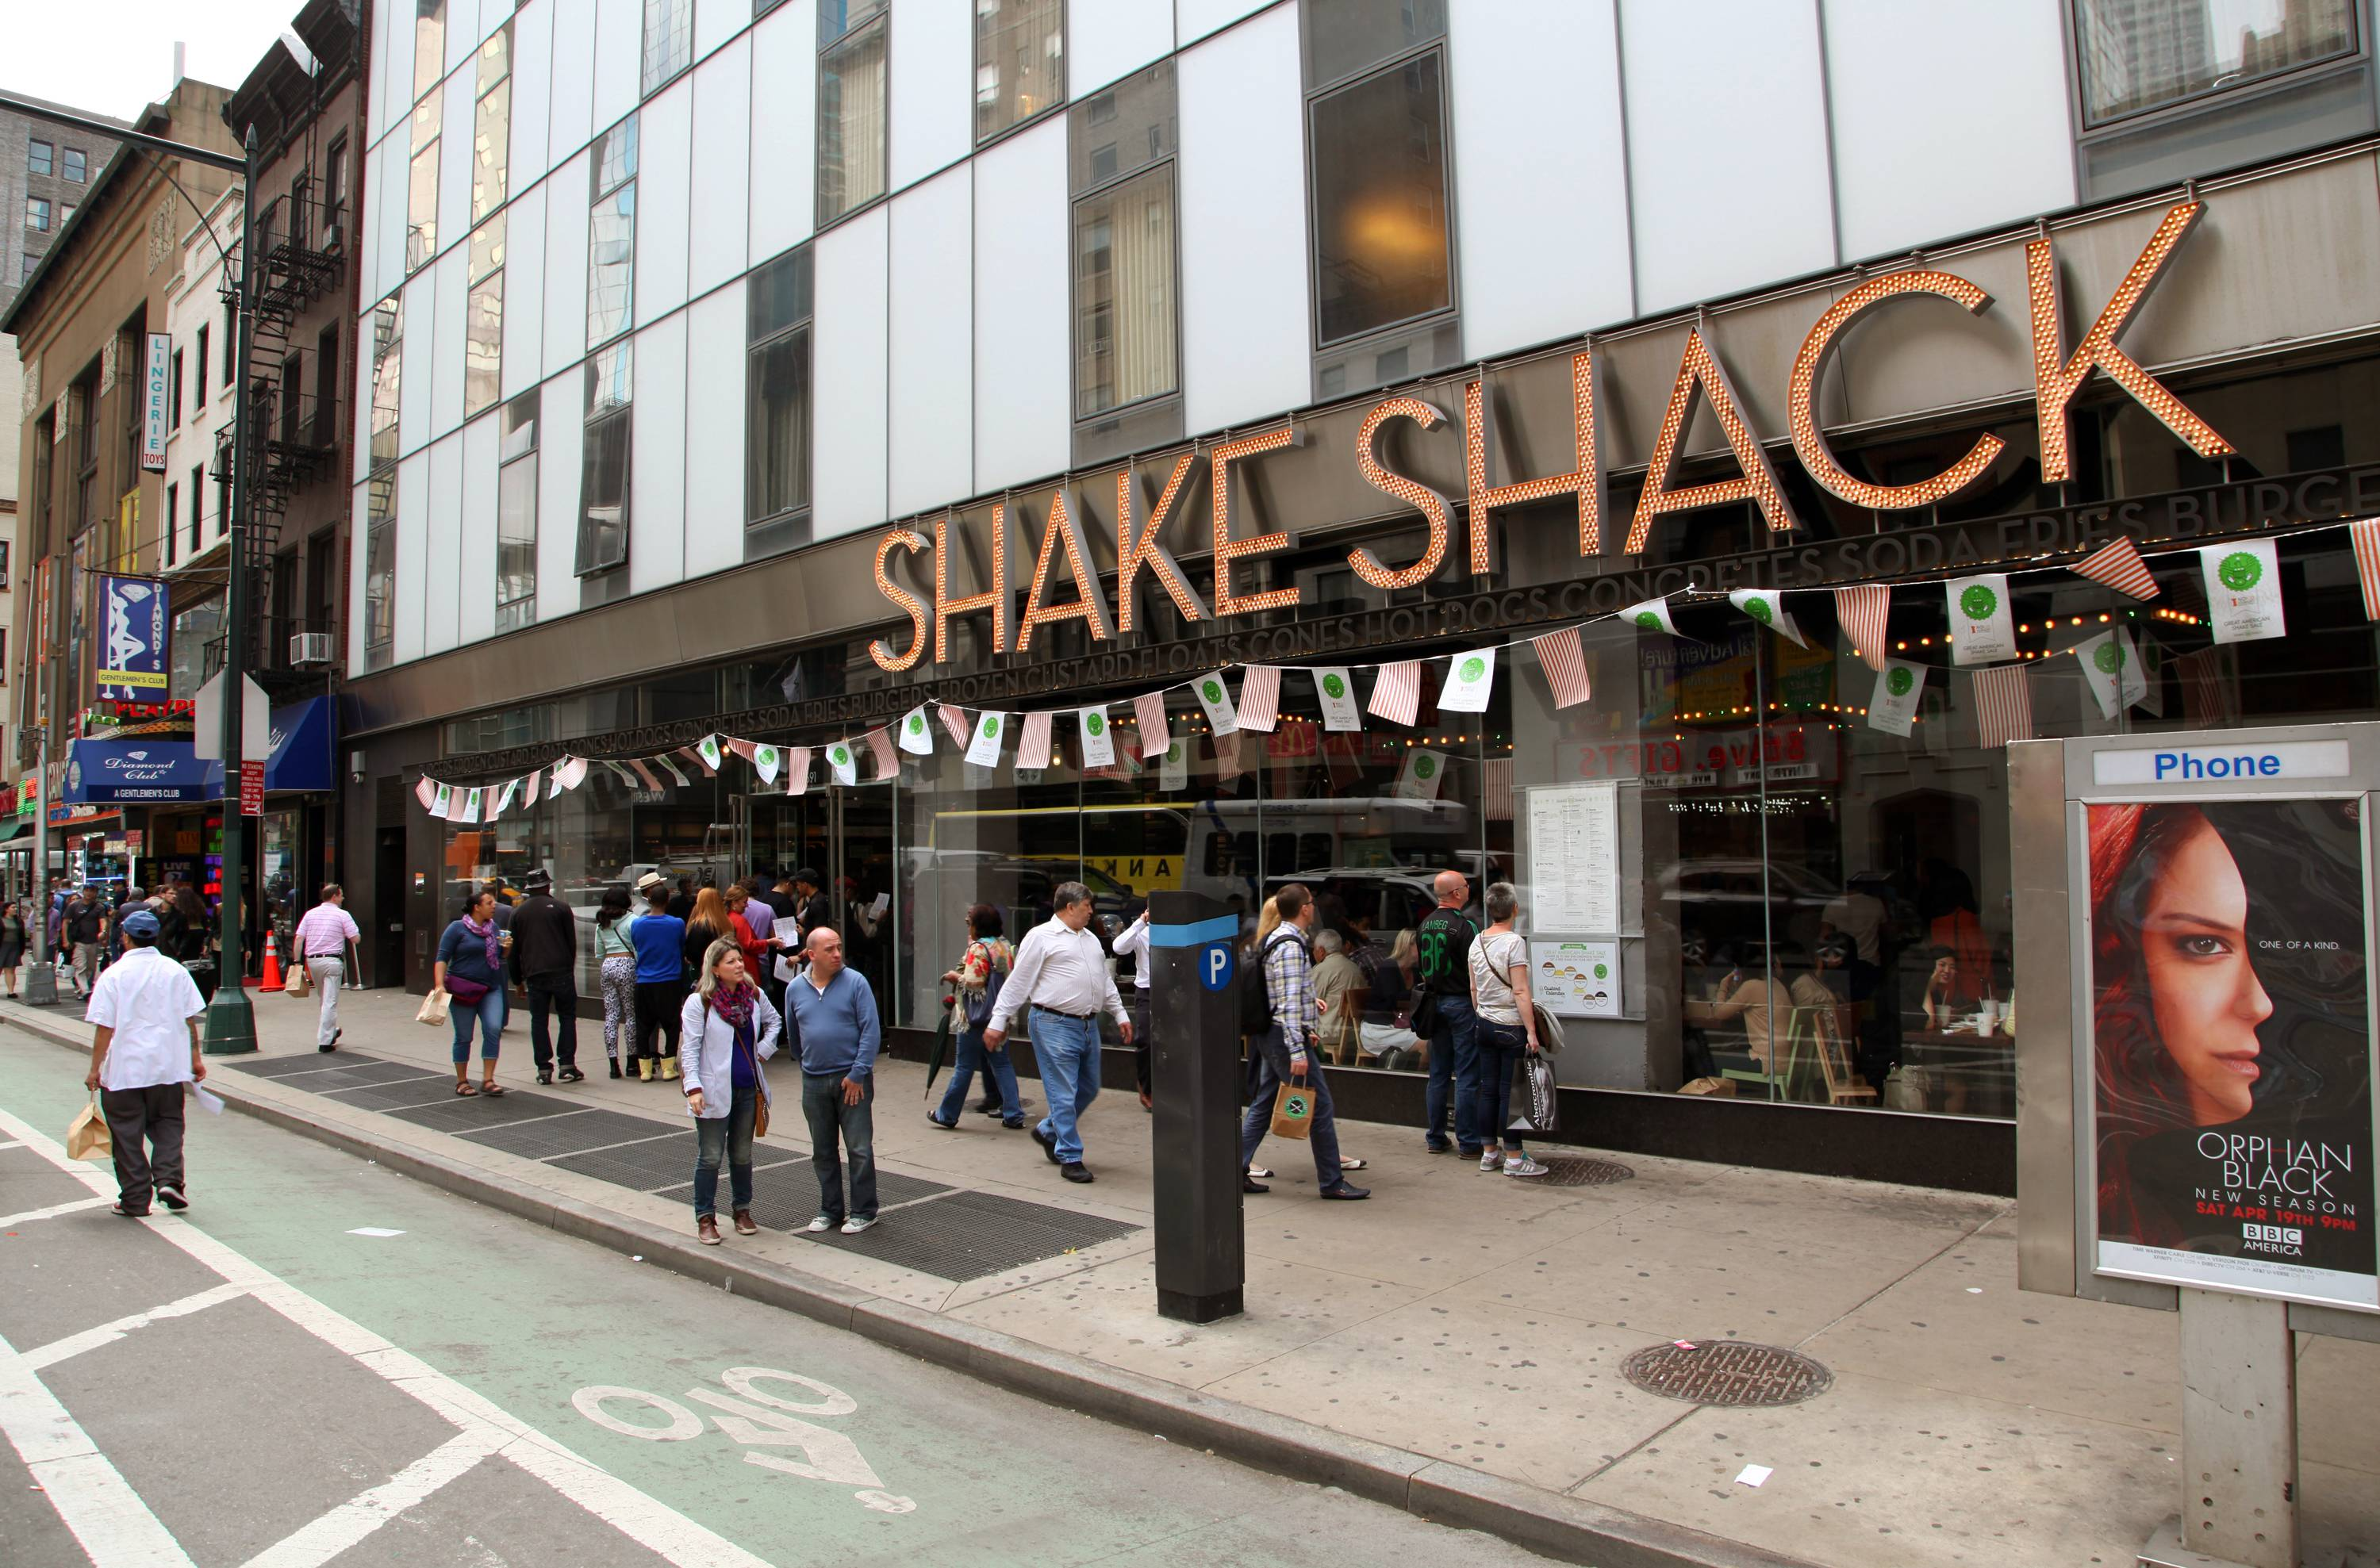 Shake Shack's upscale fast food outpost offers burgers, hot dogs, fries and shakes courtesy of restaurateur Danny Meyer. The lines are long and seats never free, but if you pick a concrete -- dense frozen custard ice cream in a cup with a straw -- an express line can get you in and out in time for the theater curtain.